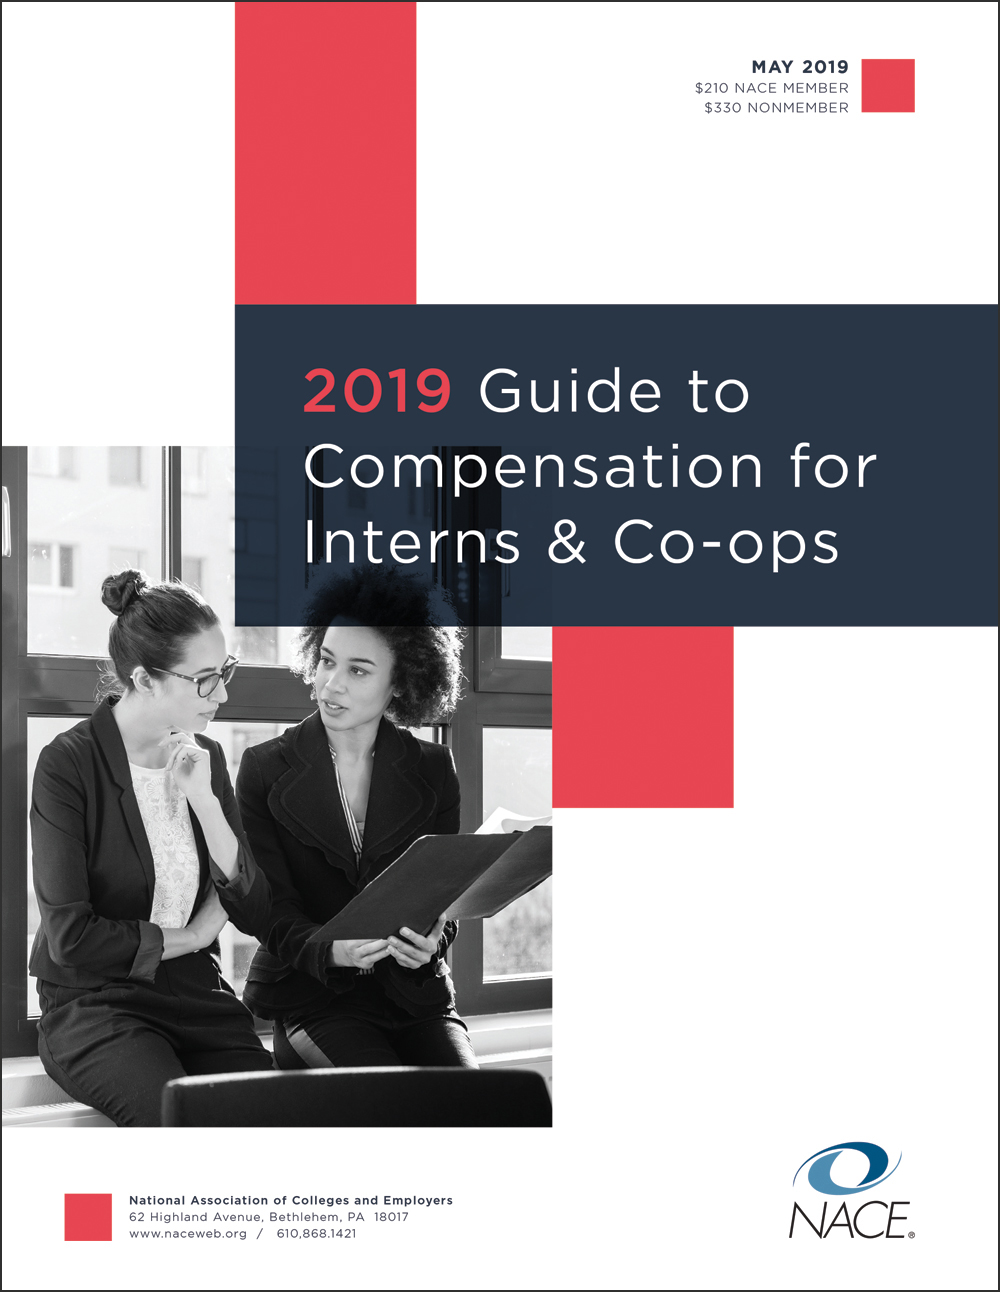 Guide to Compensation for Interns & Co-ops